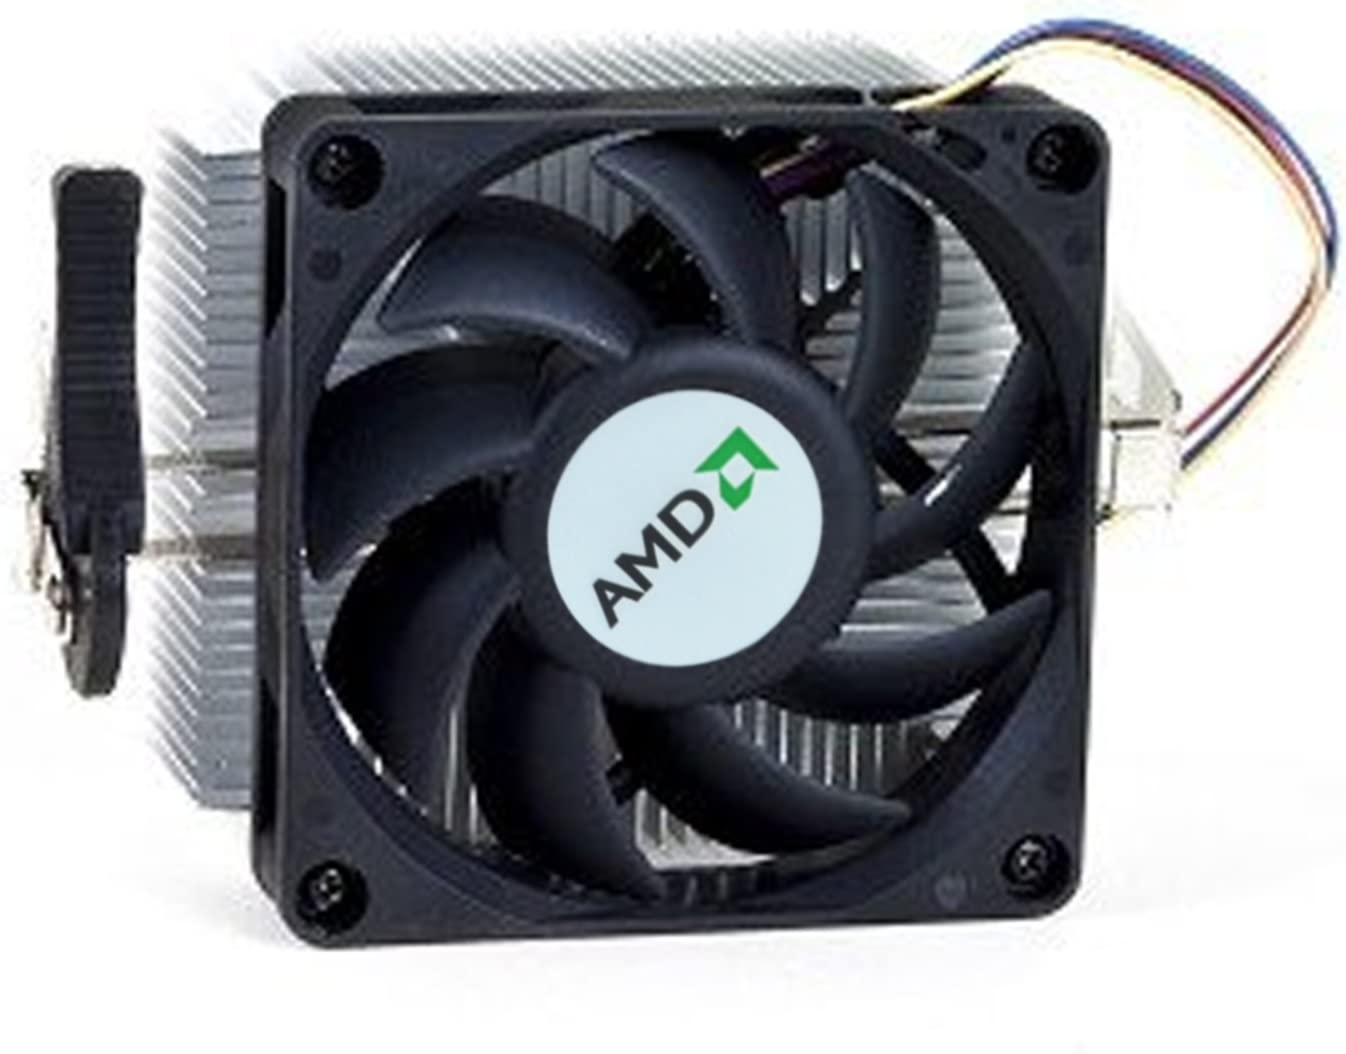 "AMD FHSA7015B-1268 Socket FM1/AM3+/AM3/AM2+/AM2/1207/940/939/754 Aluminum Heat Sink & 2.75"" Fan w/4-Pin up to 100W"